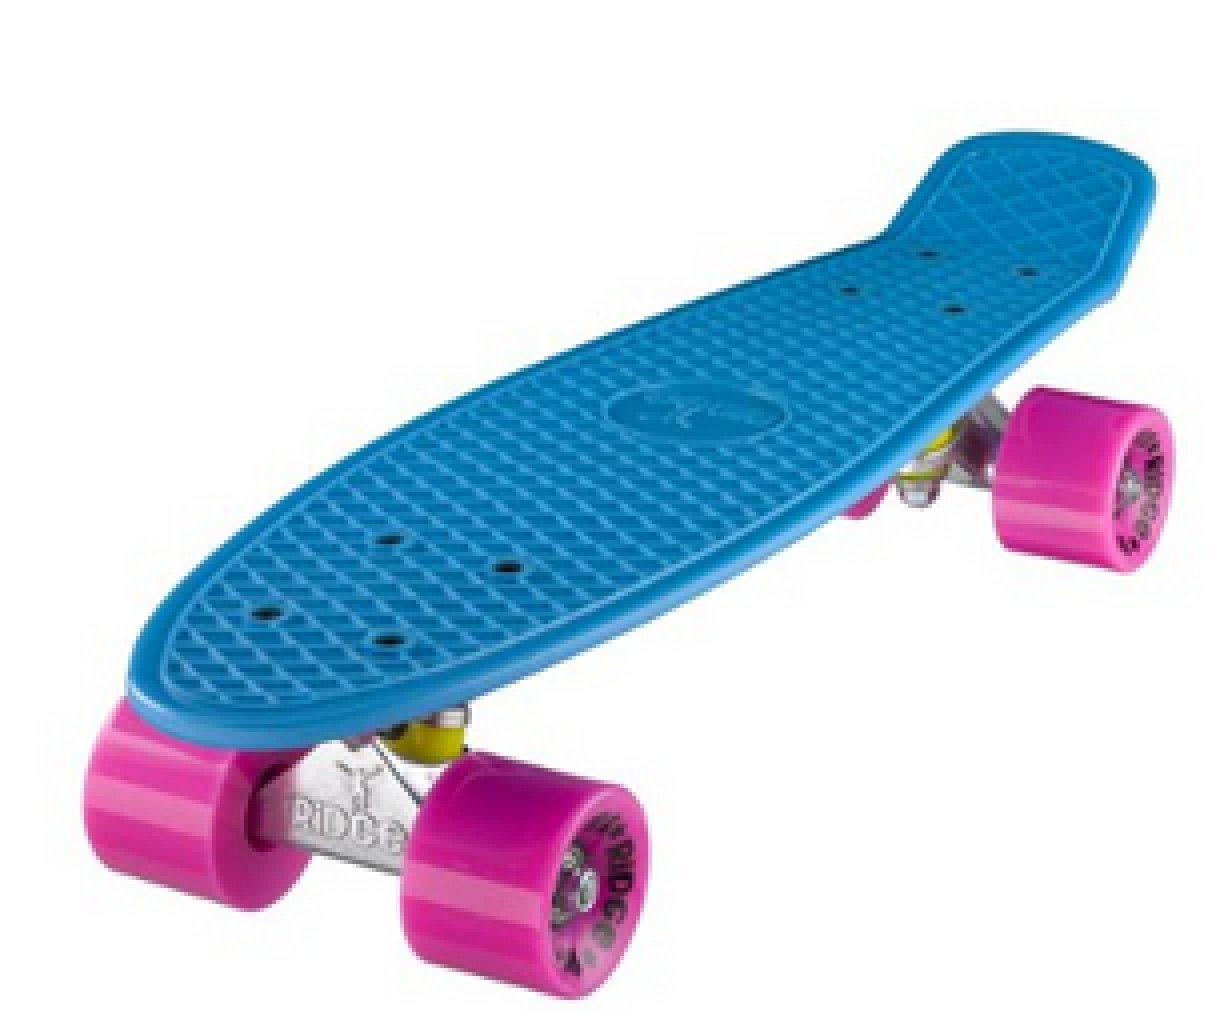 人気を誇る Ridge Ridge Skateboards Retro Cruiser [並行輸入品] Cruiser Mini Board [並行輸入品] B011ED98UY, 海南市:90de69b2 --- a0267596.xsph.ru